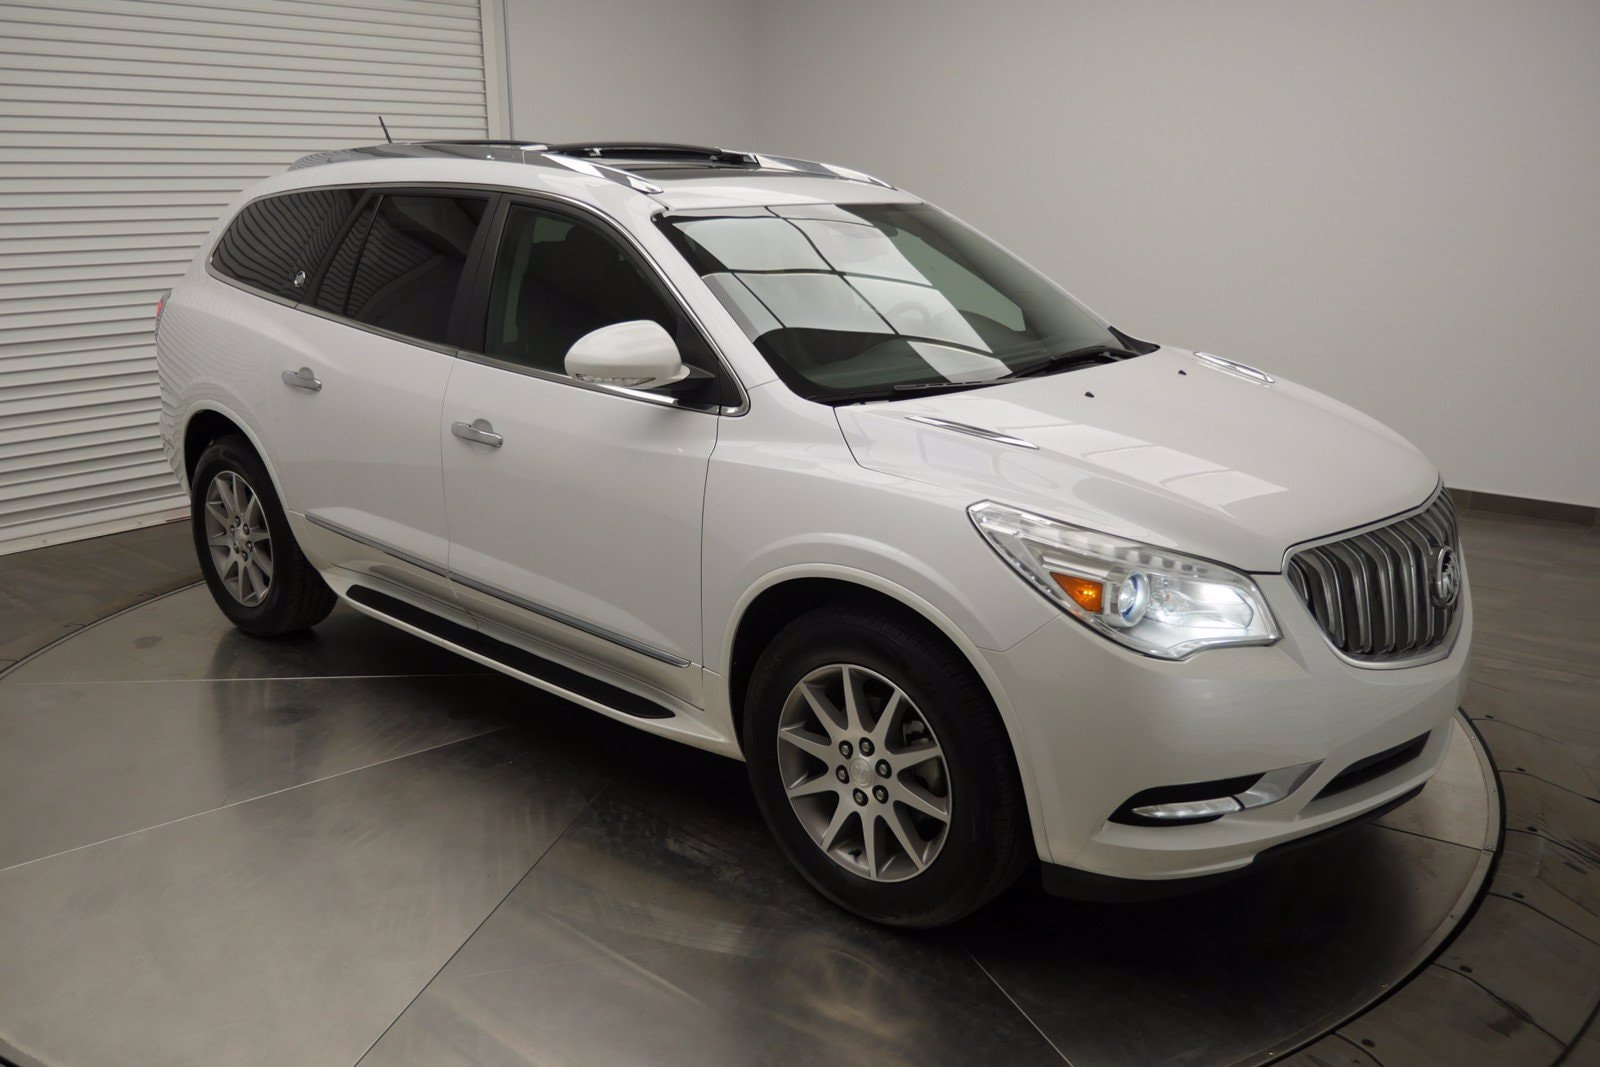 used 2016 Buick Enclave car